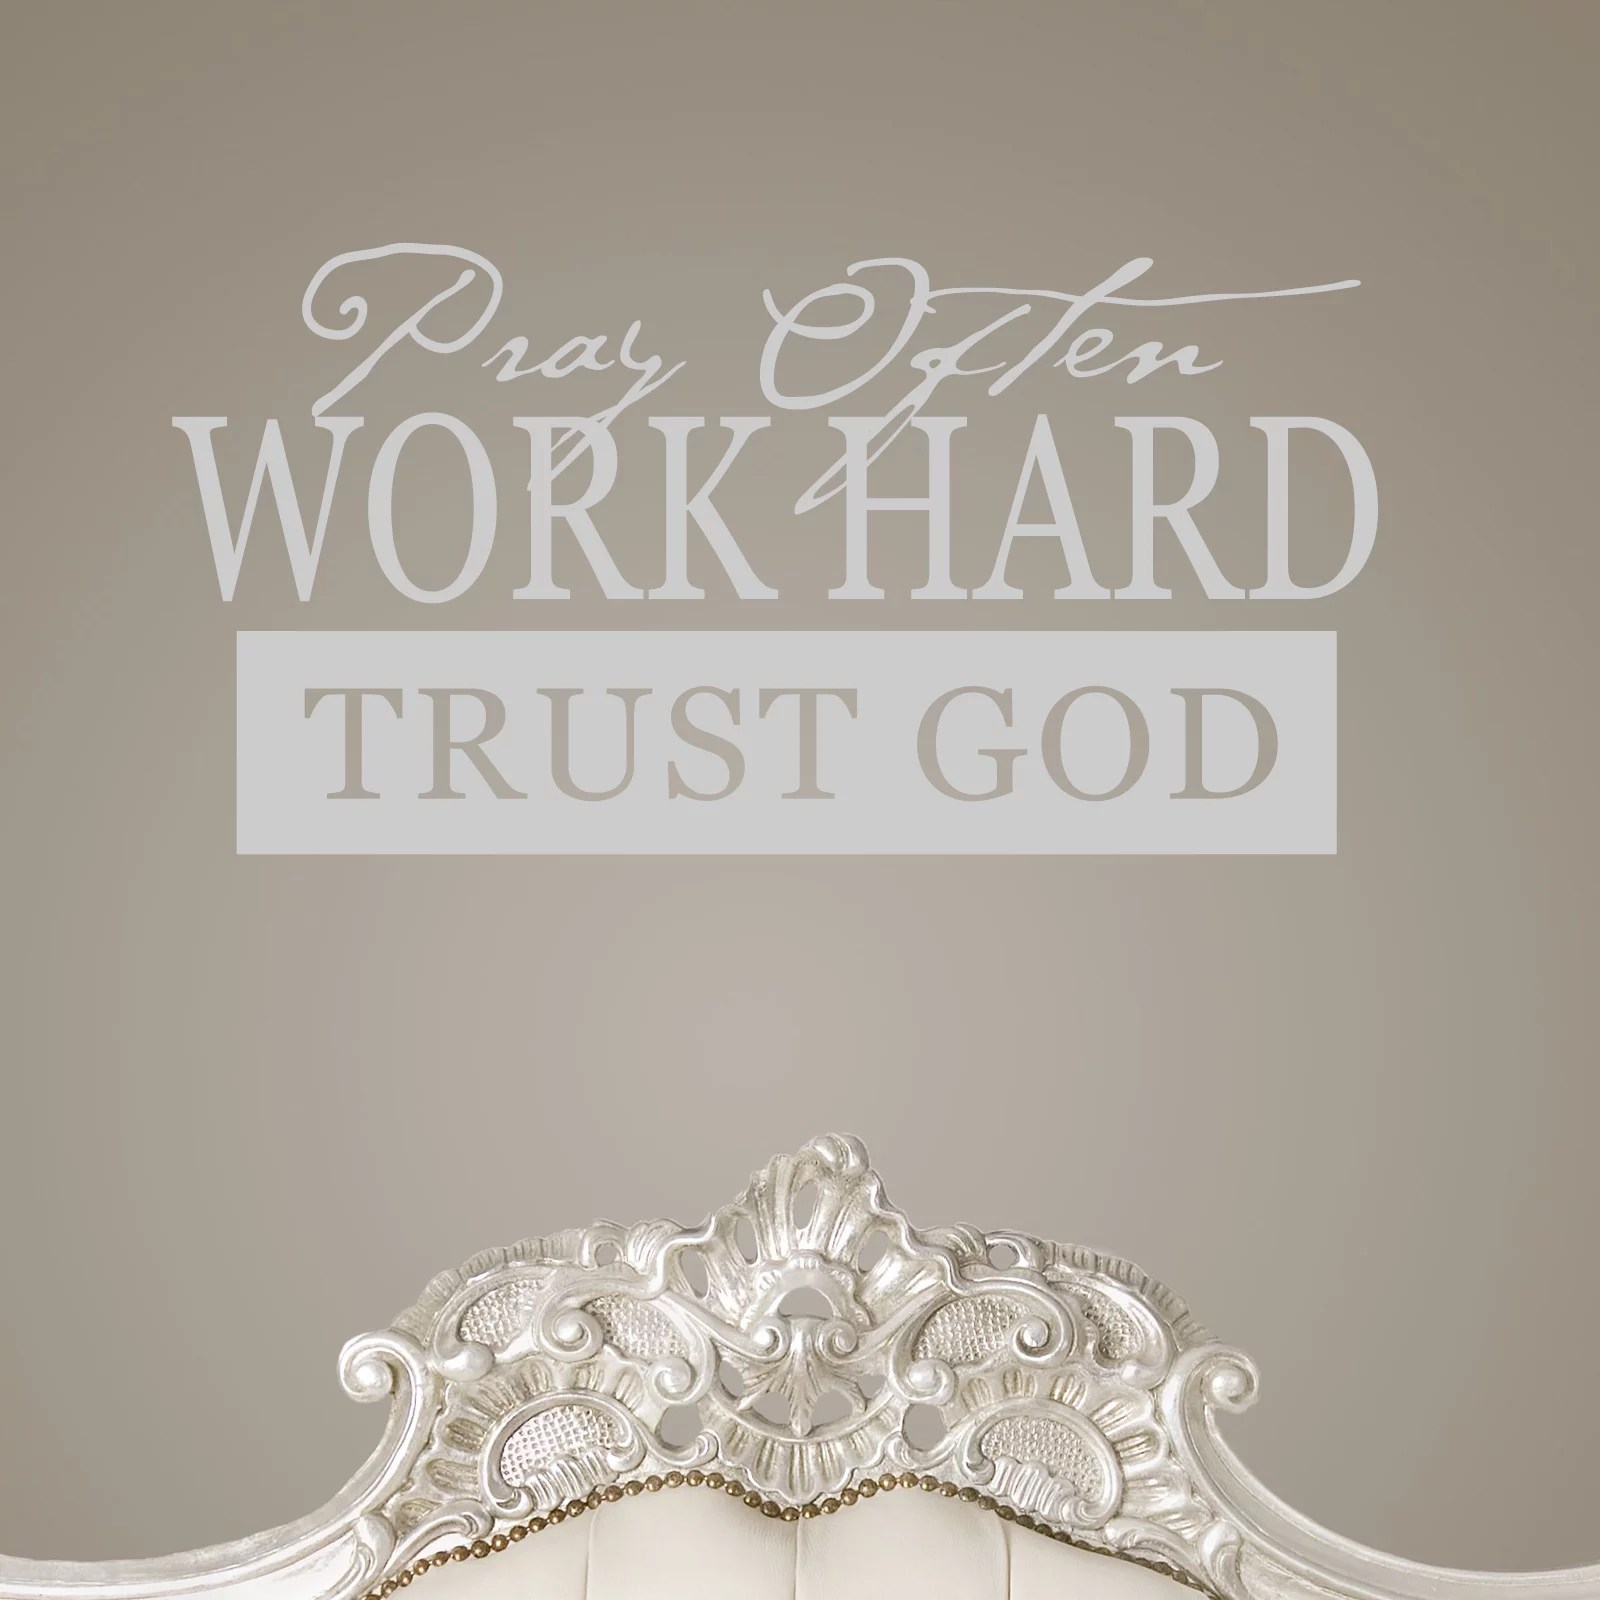 Floral Inspirational Quote Wallpaper Pray Often Work Hard Trust God Religious Quote Wall